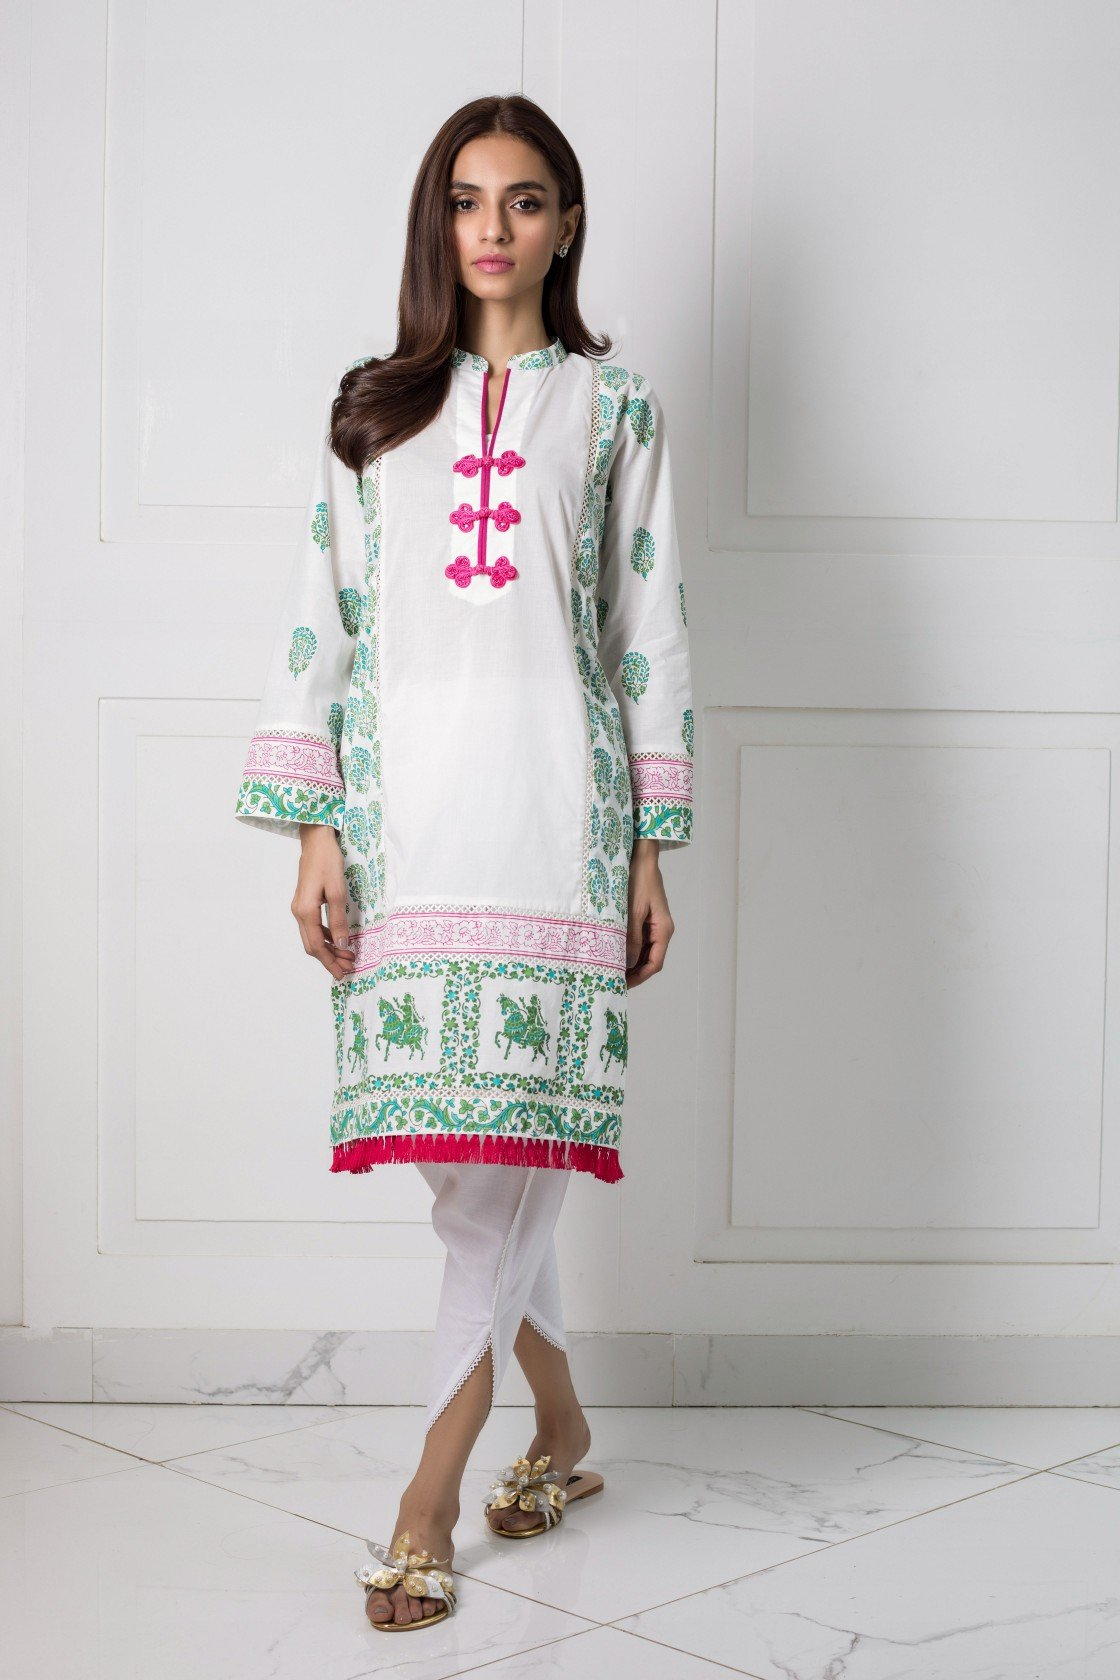 Shehrnaz- -White Shirt with Green Blockprint